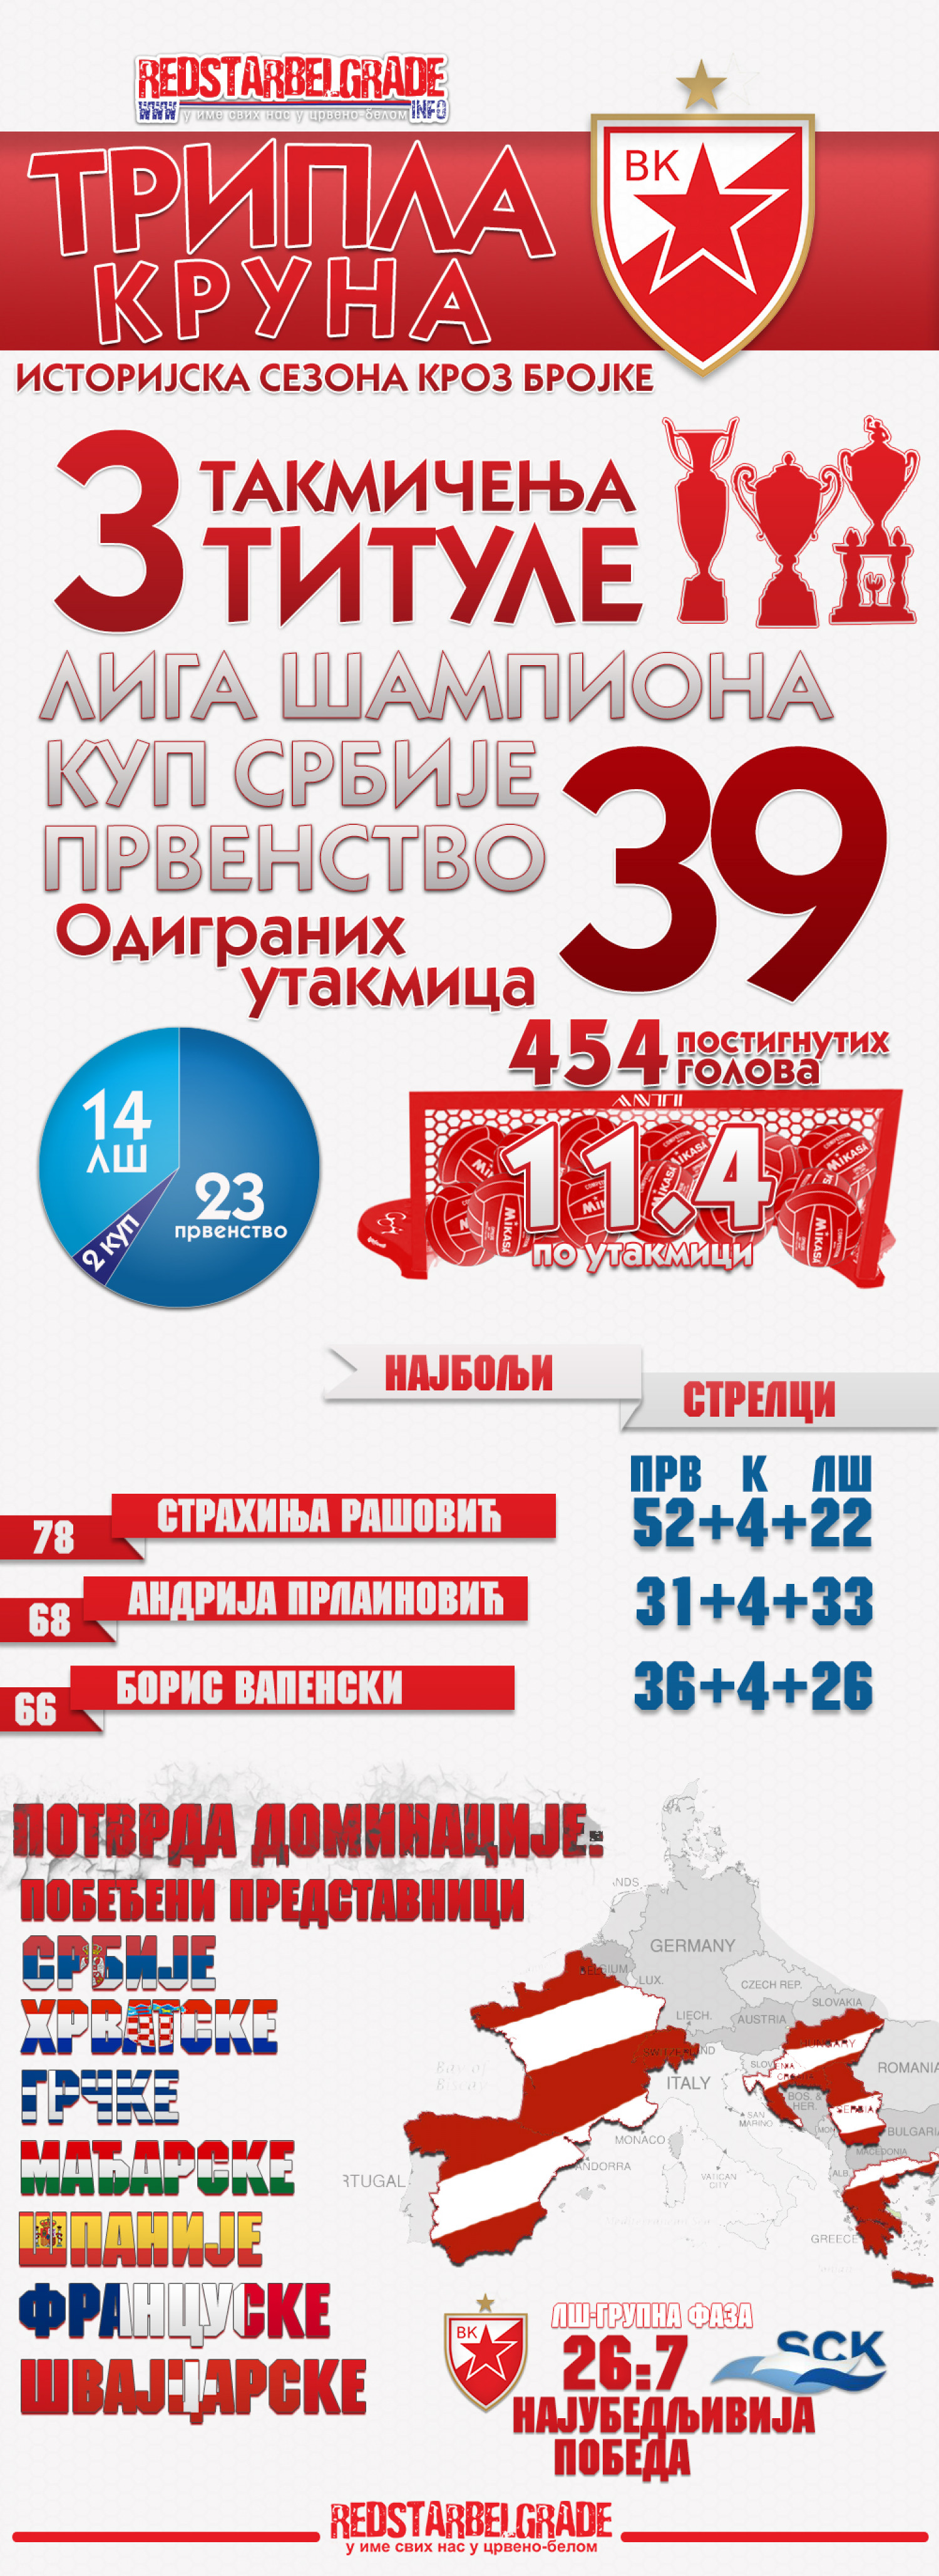 Waterpolo club Red Star Belgrade - season analysis Infographic